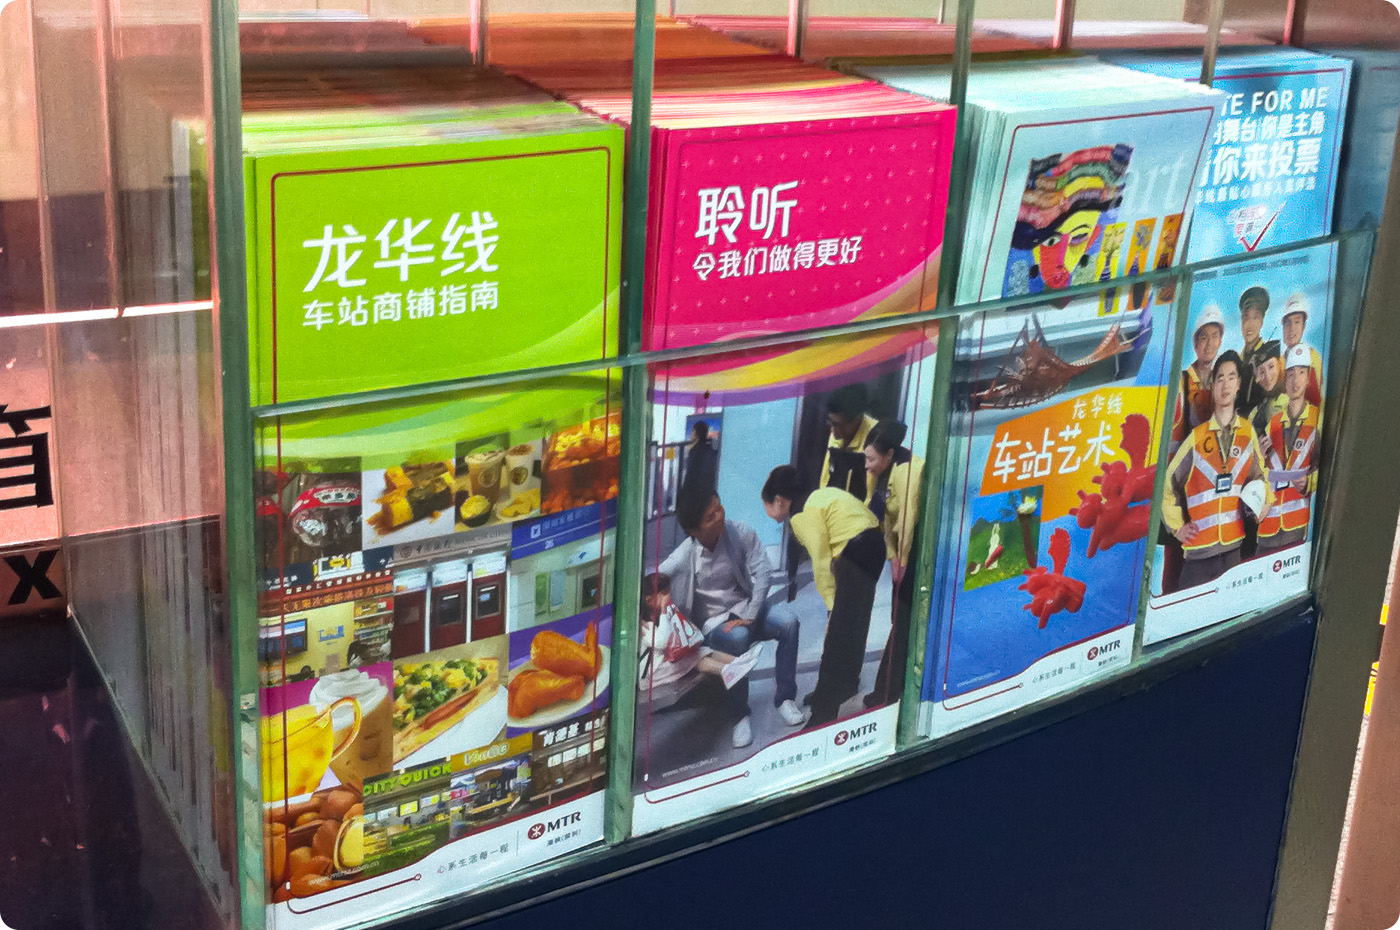 MTR Corporation (Shenzhen) Limited Promotional Leaflet Design